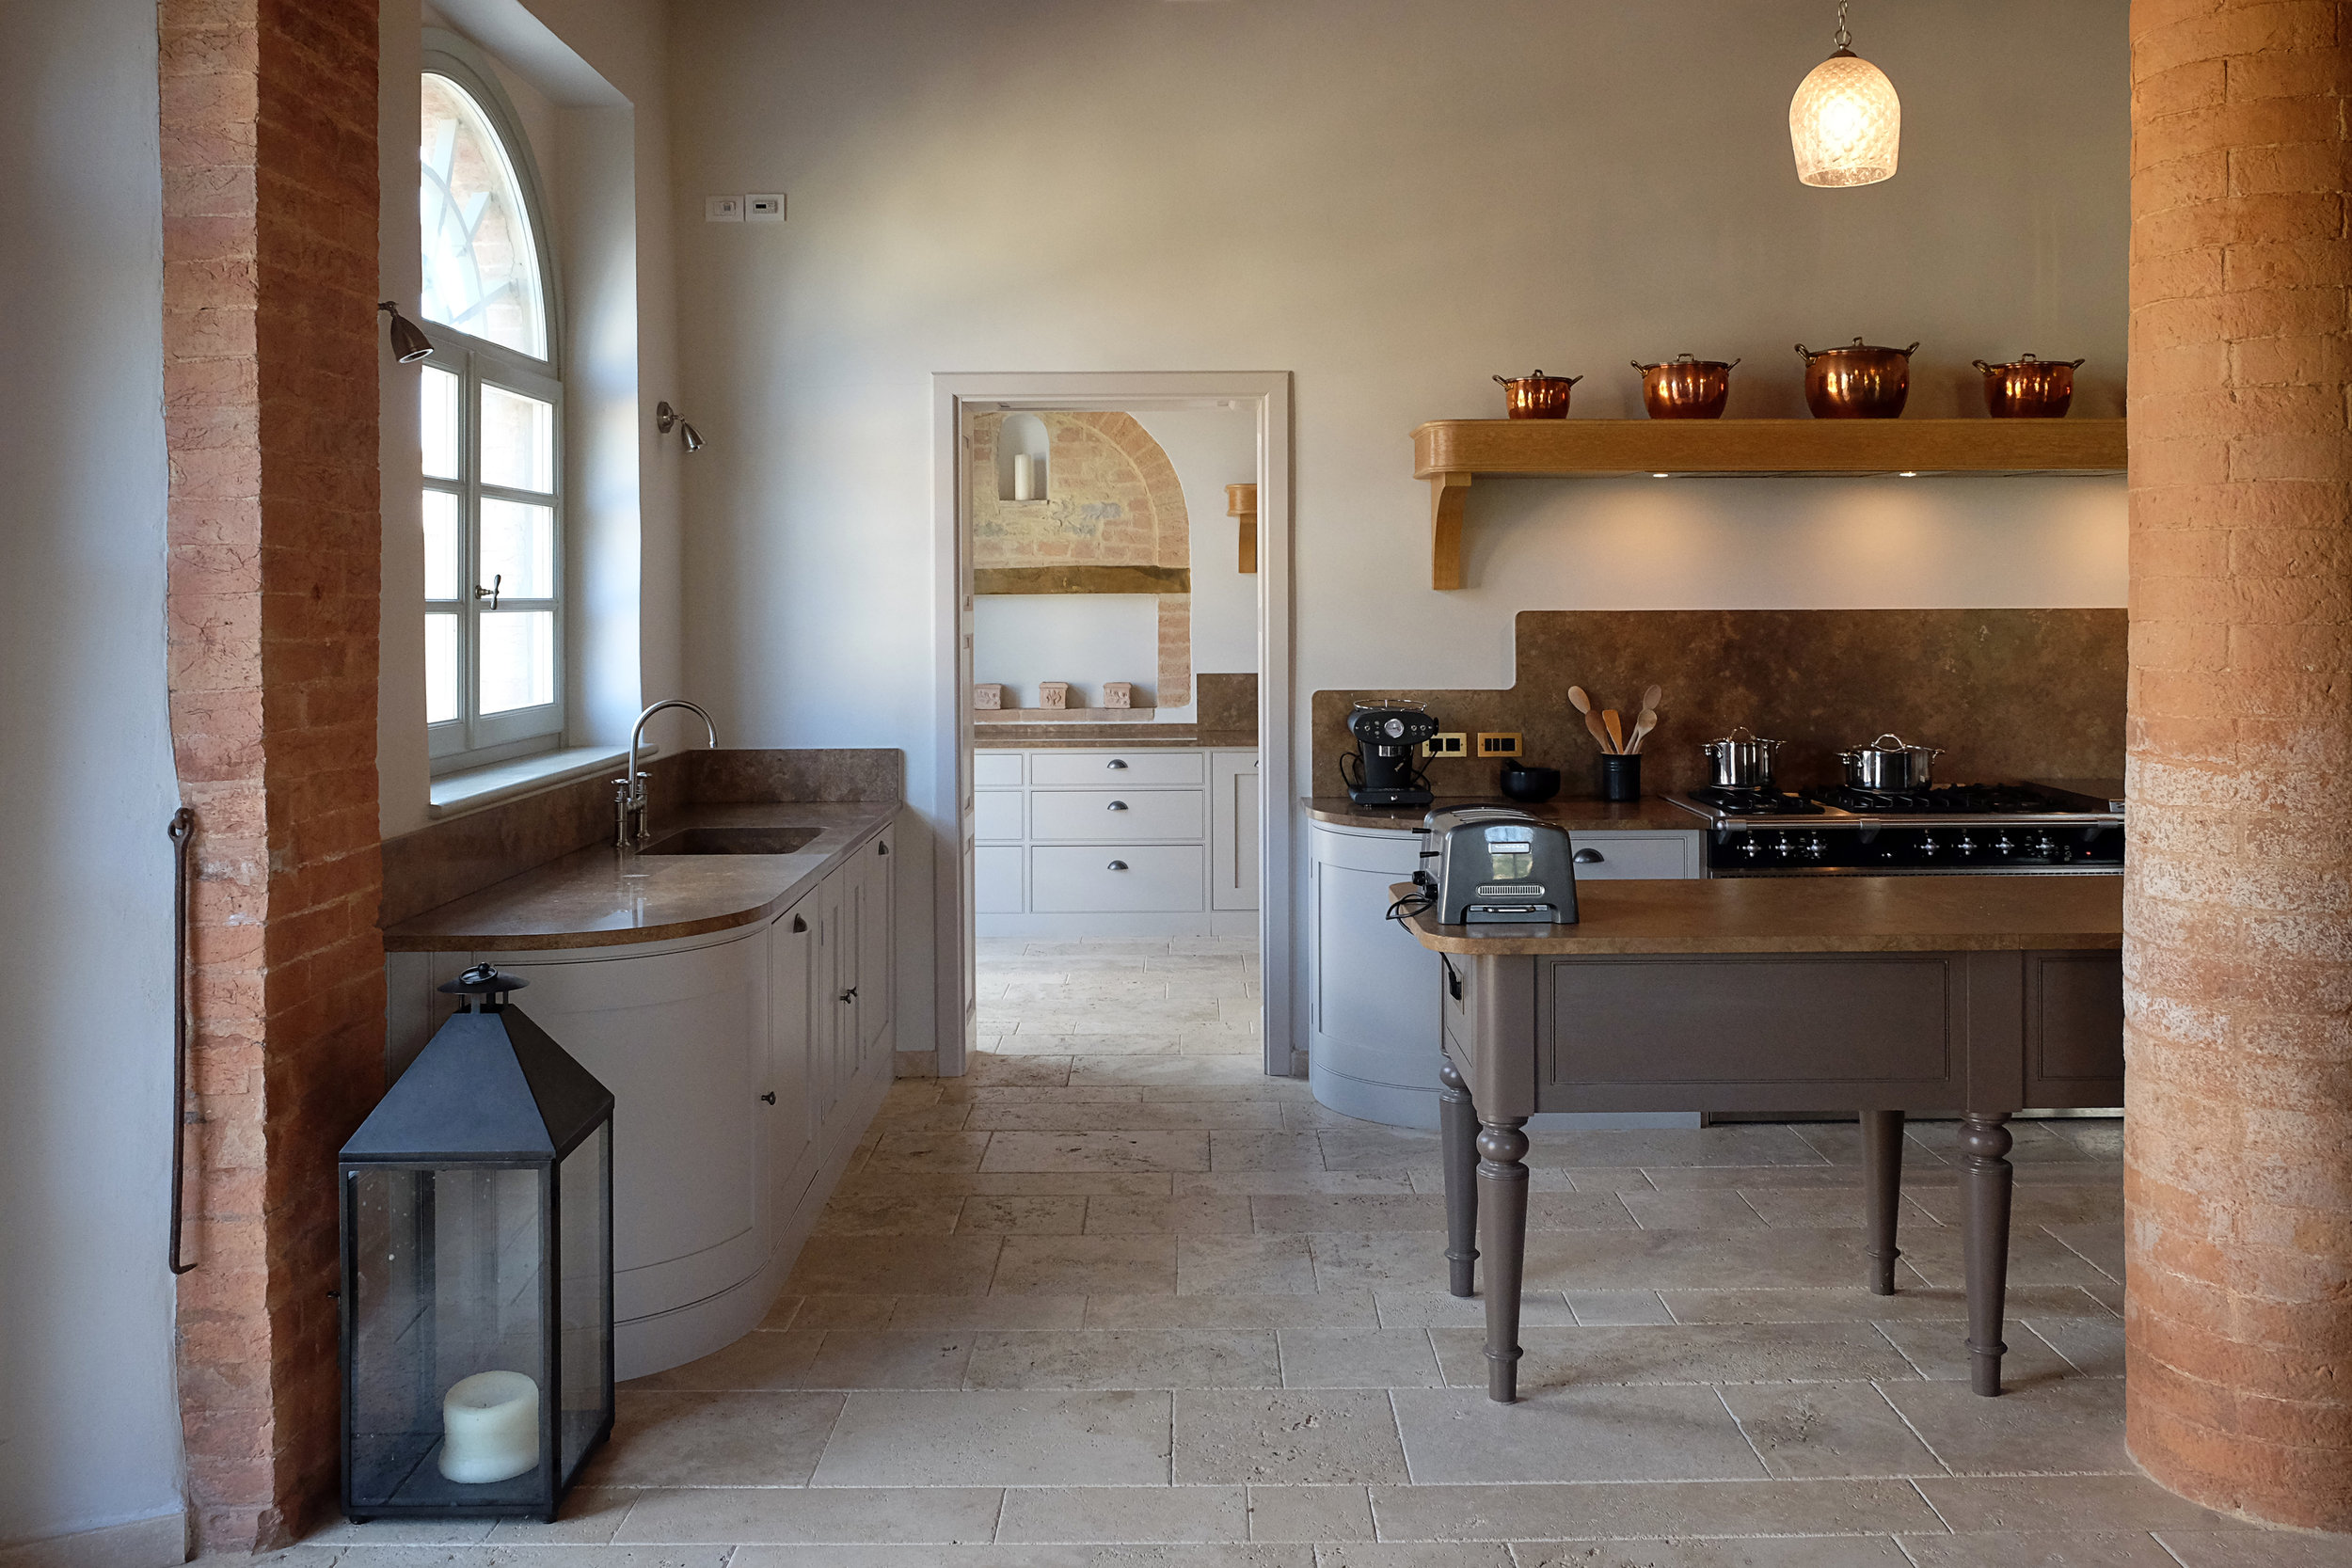 Farrow and Ball Cornforth White and London Clay compliment perfectly the natural Travertine stone floor